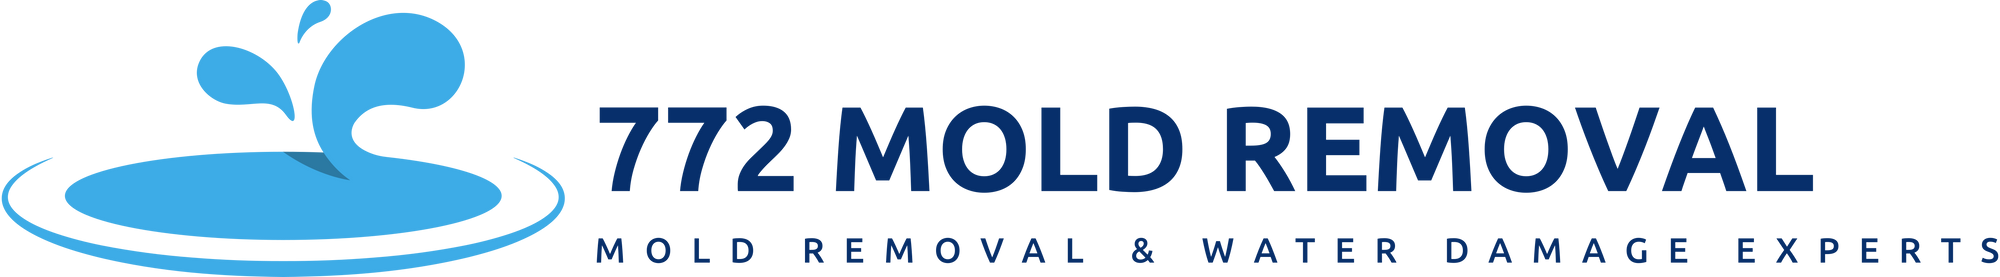 772 Mold Removal